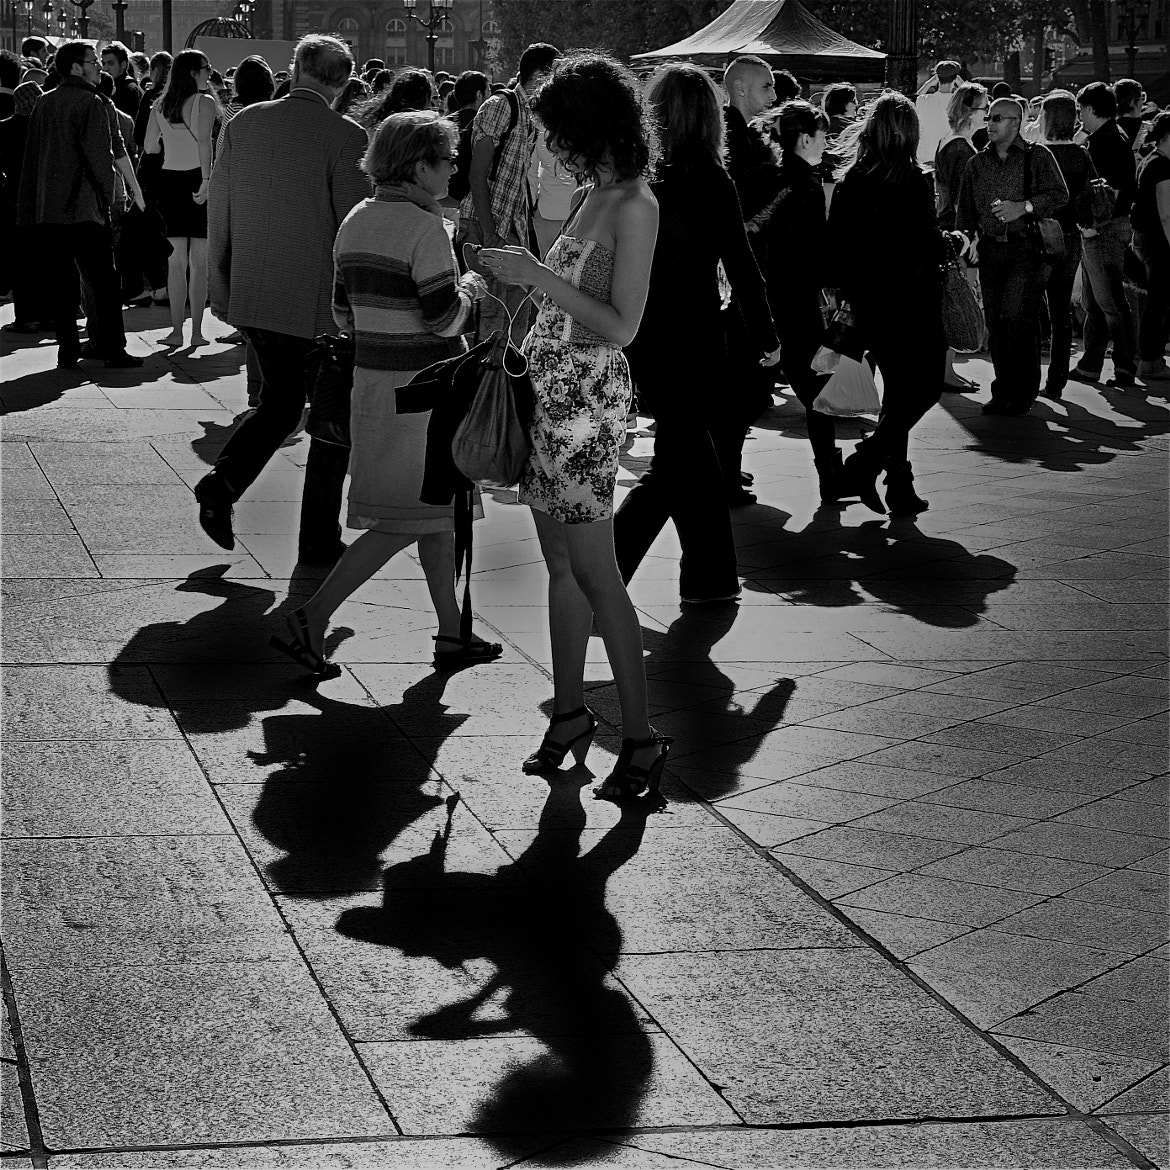 Photograph Shadows dance by Guib_Did Didier on 500px